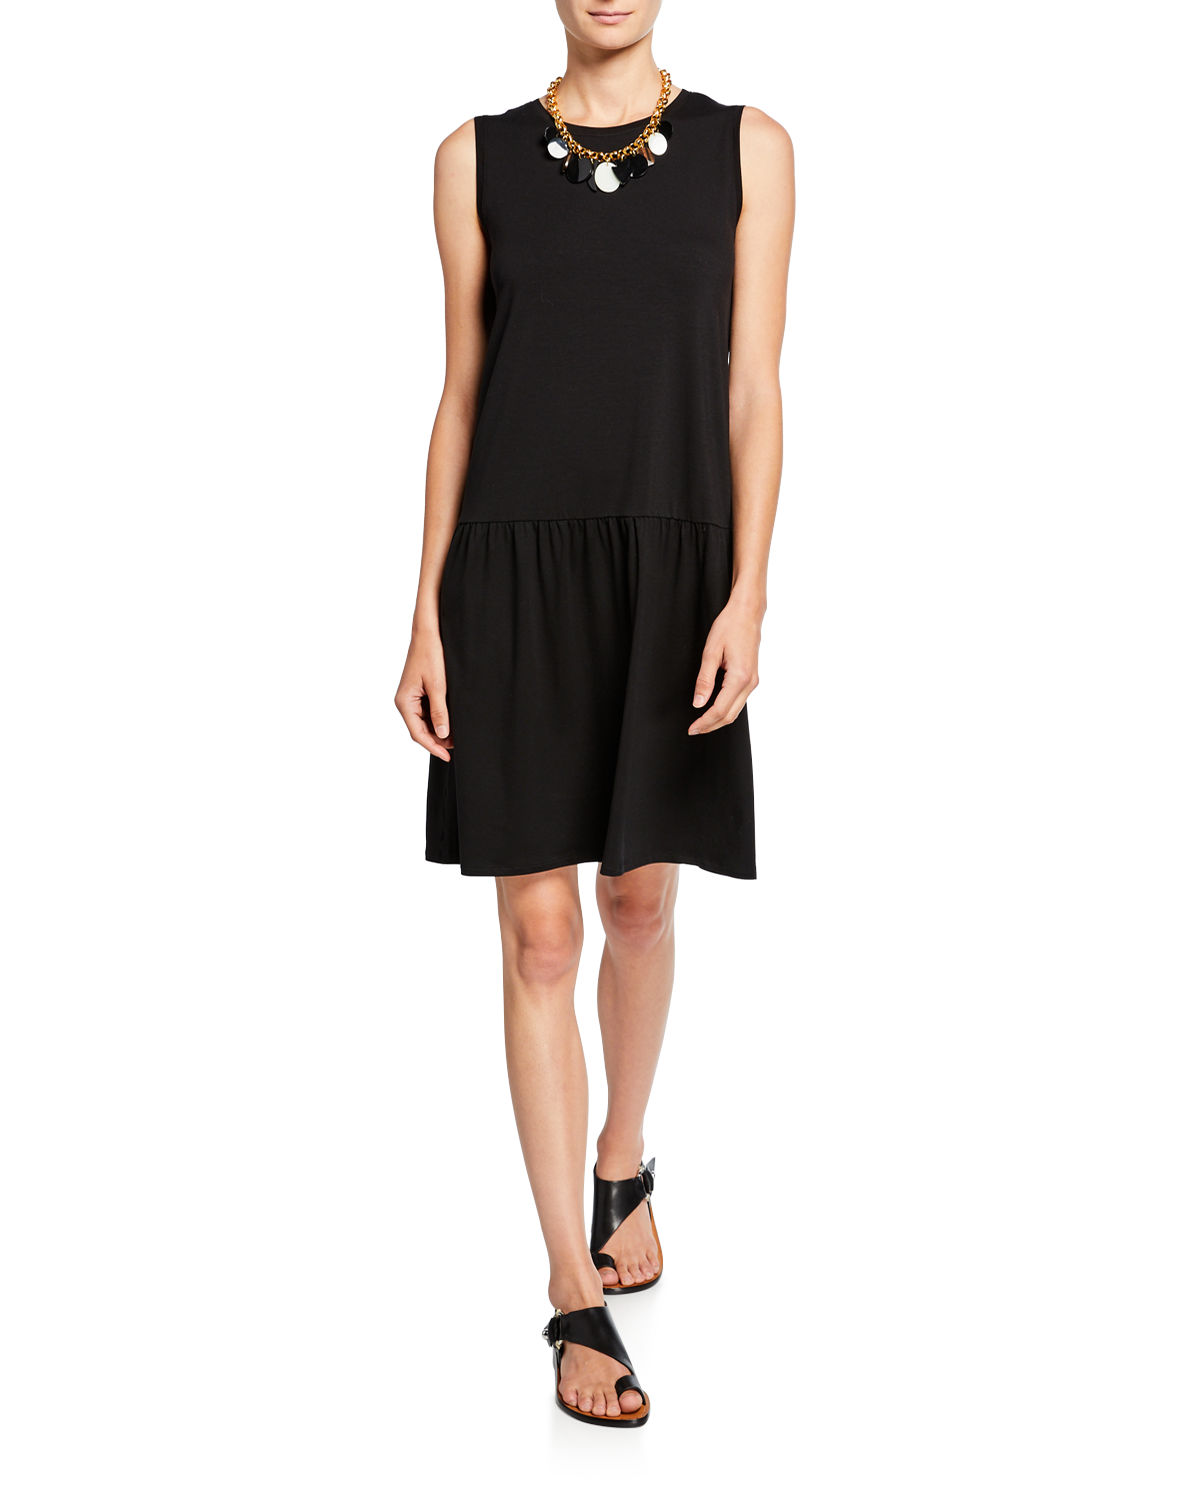 Eileen Fisher Dresses PETITE DROP-WAIST SLEEVELESS JERSEY DRESS